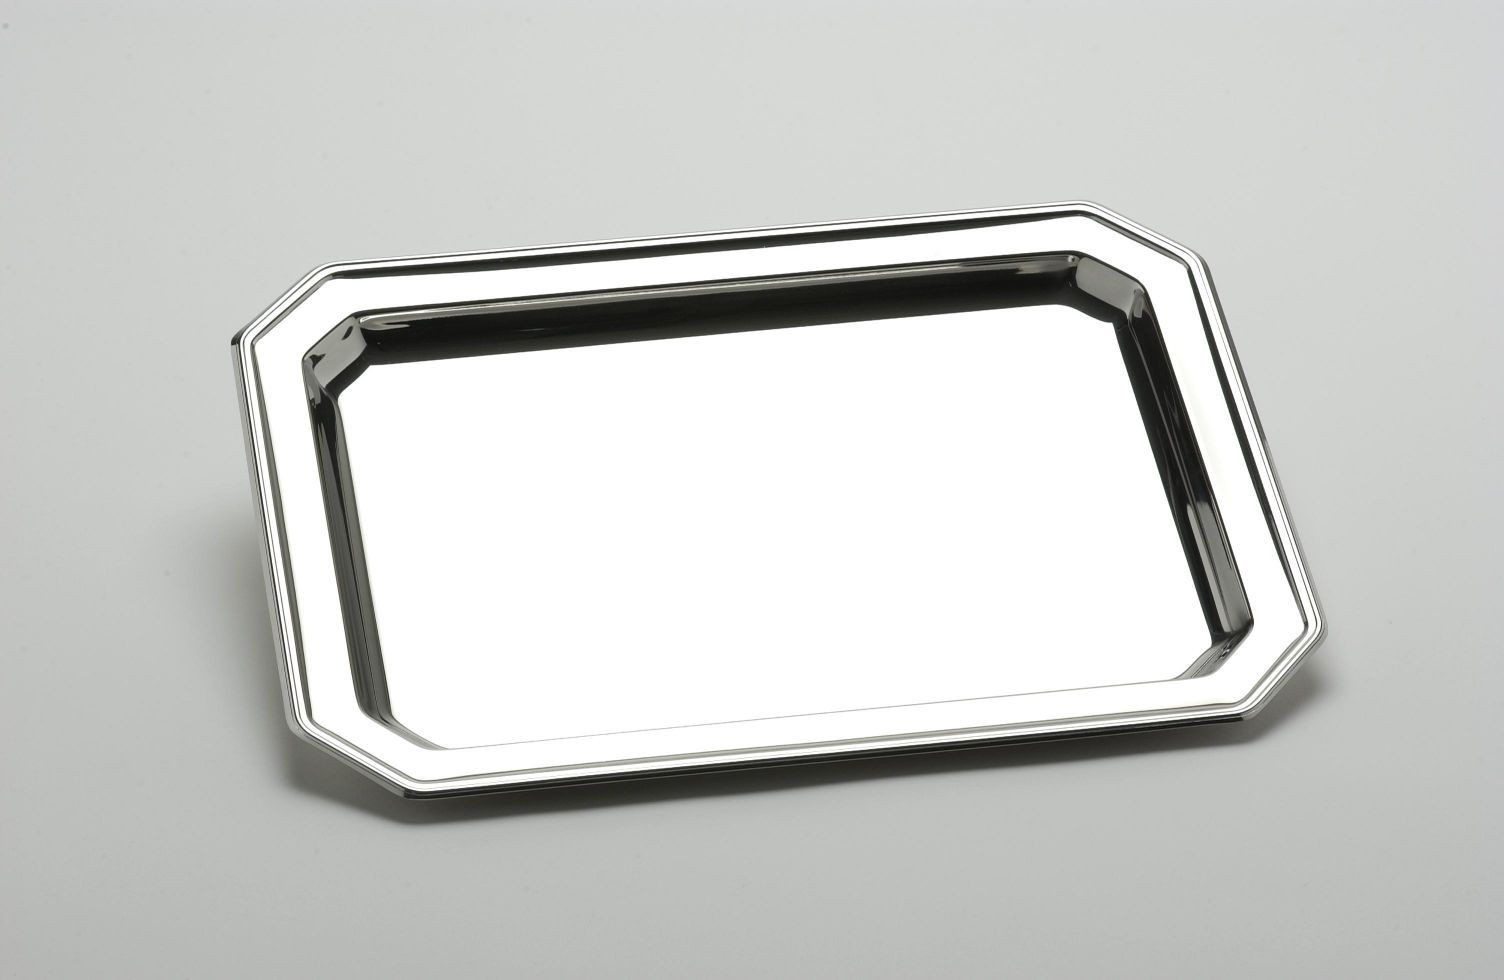 Utility tray meaning